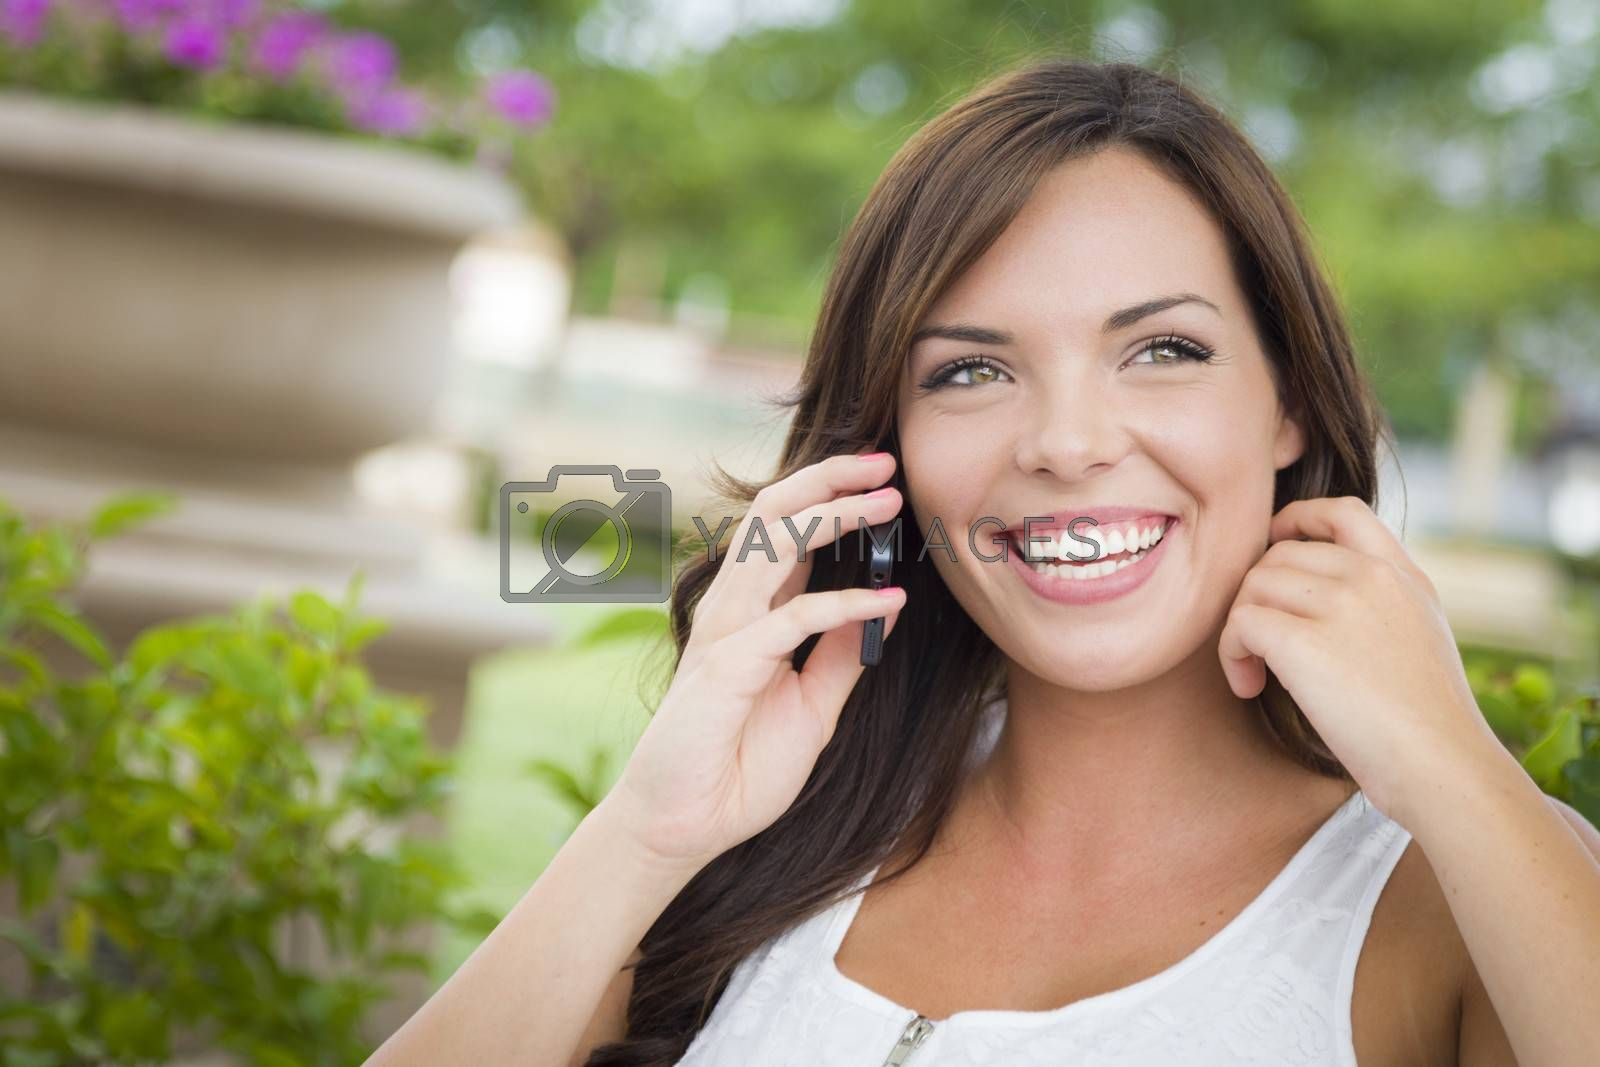 Attractive Young Adult Female Talking on Cell Phone Outdoors on Bench.